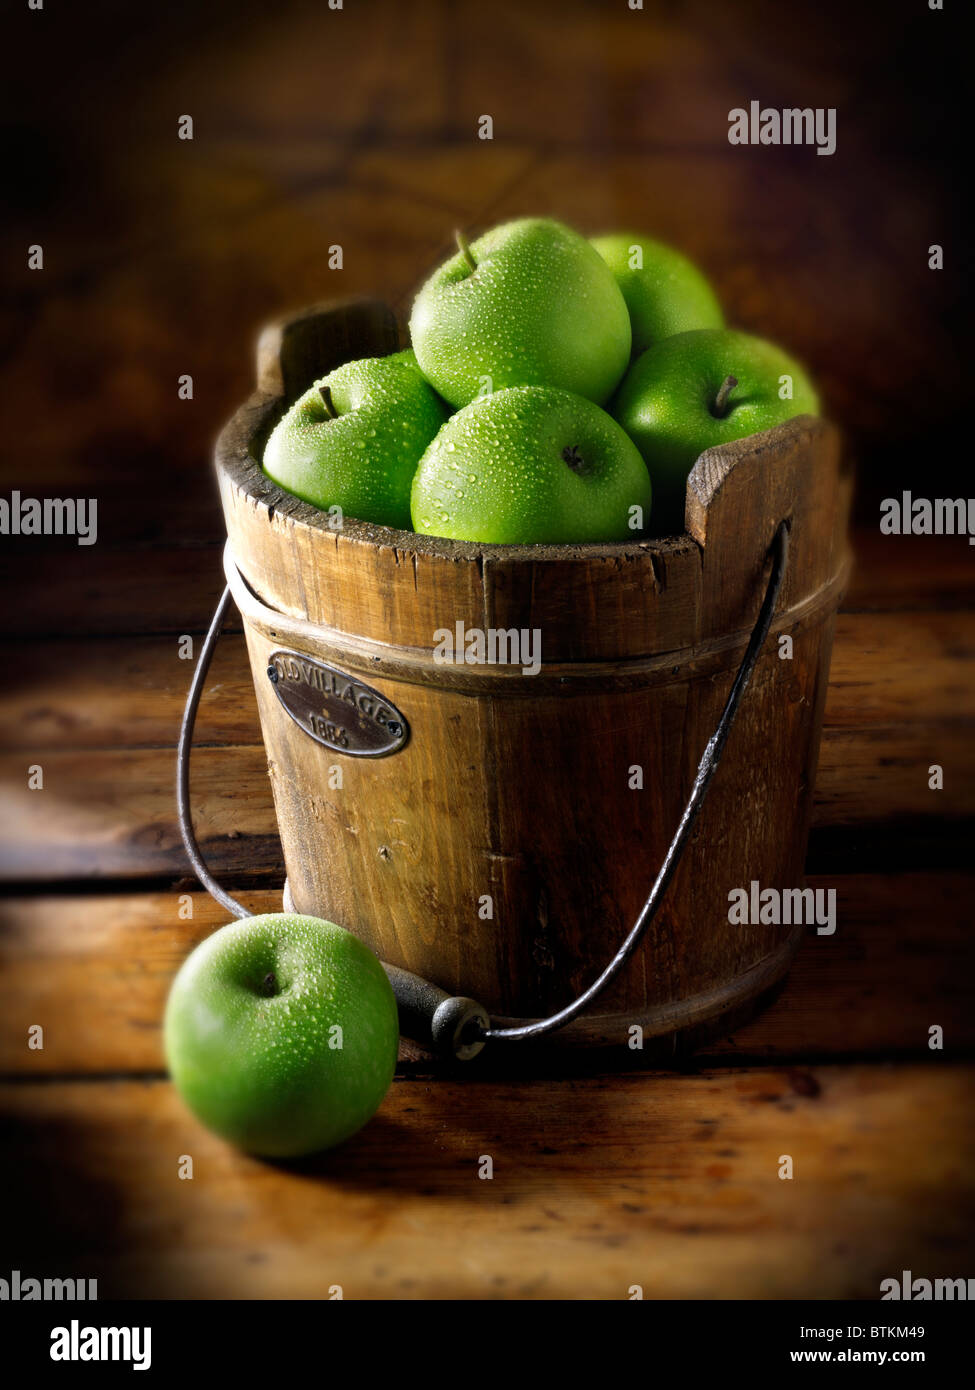 Fresh Granny Smiths apples - Stock Image